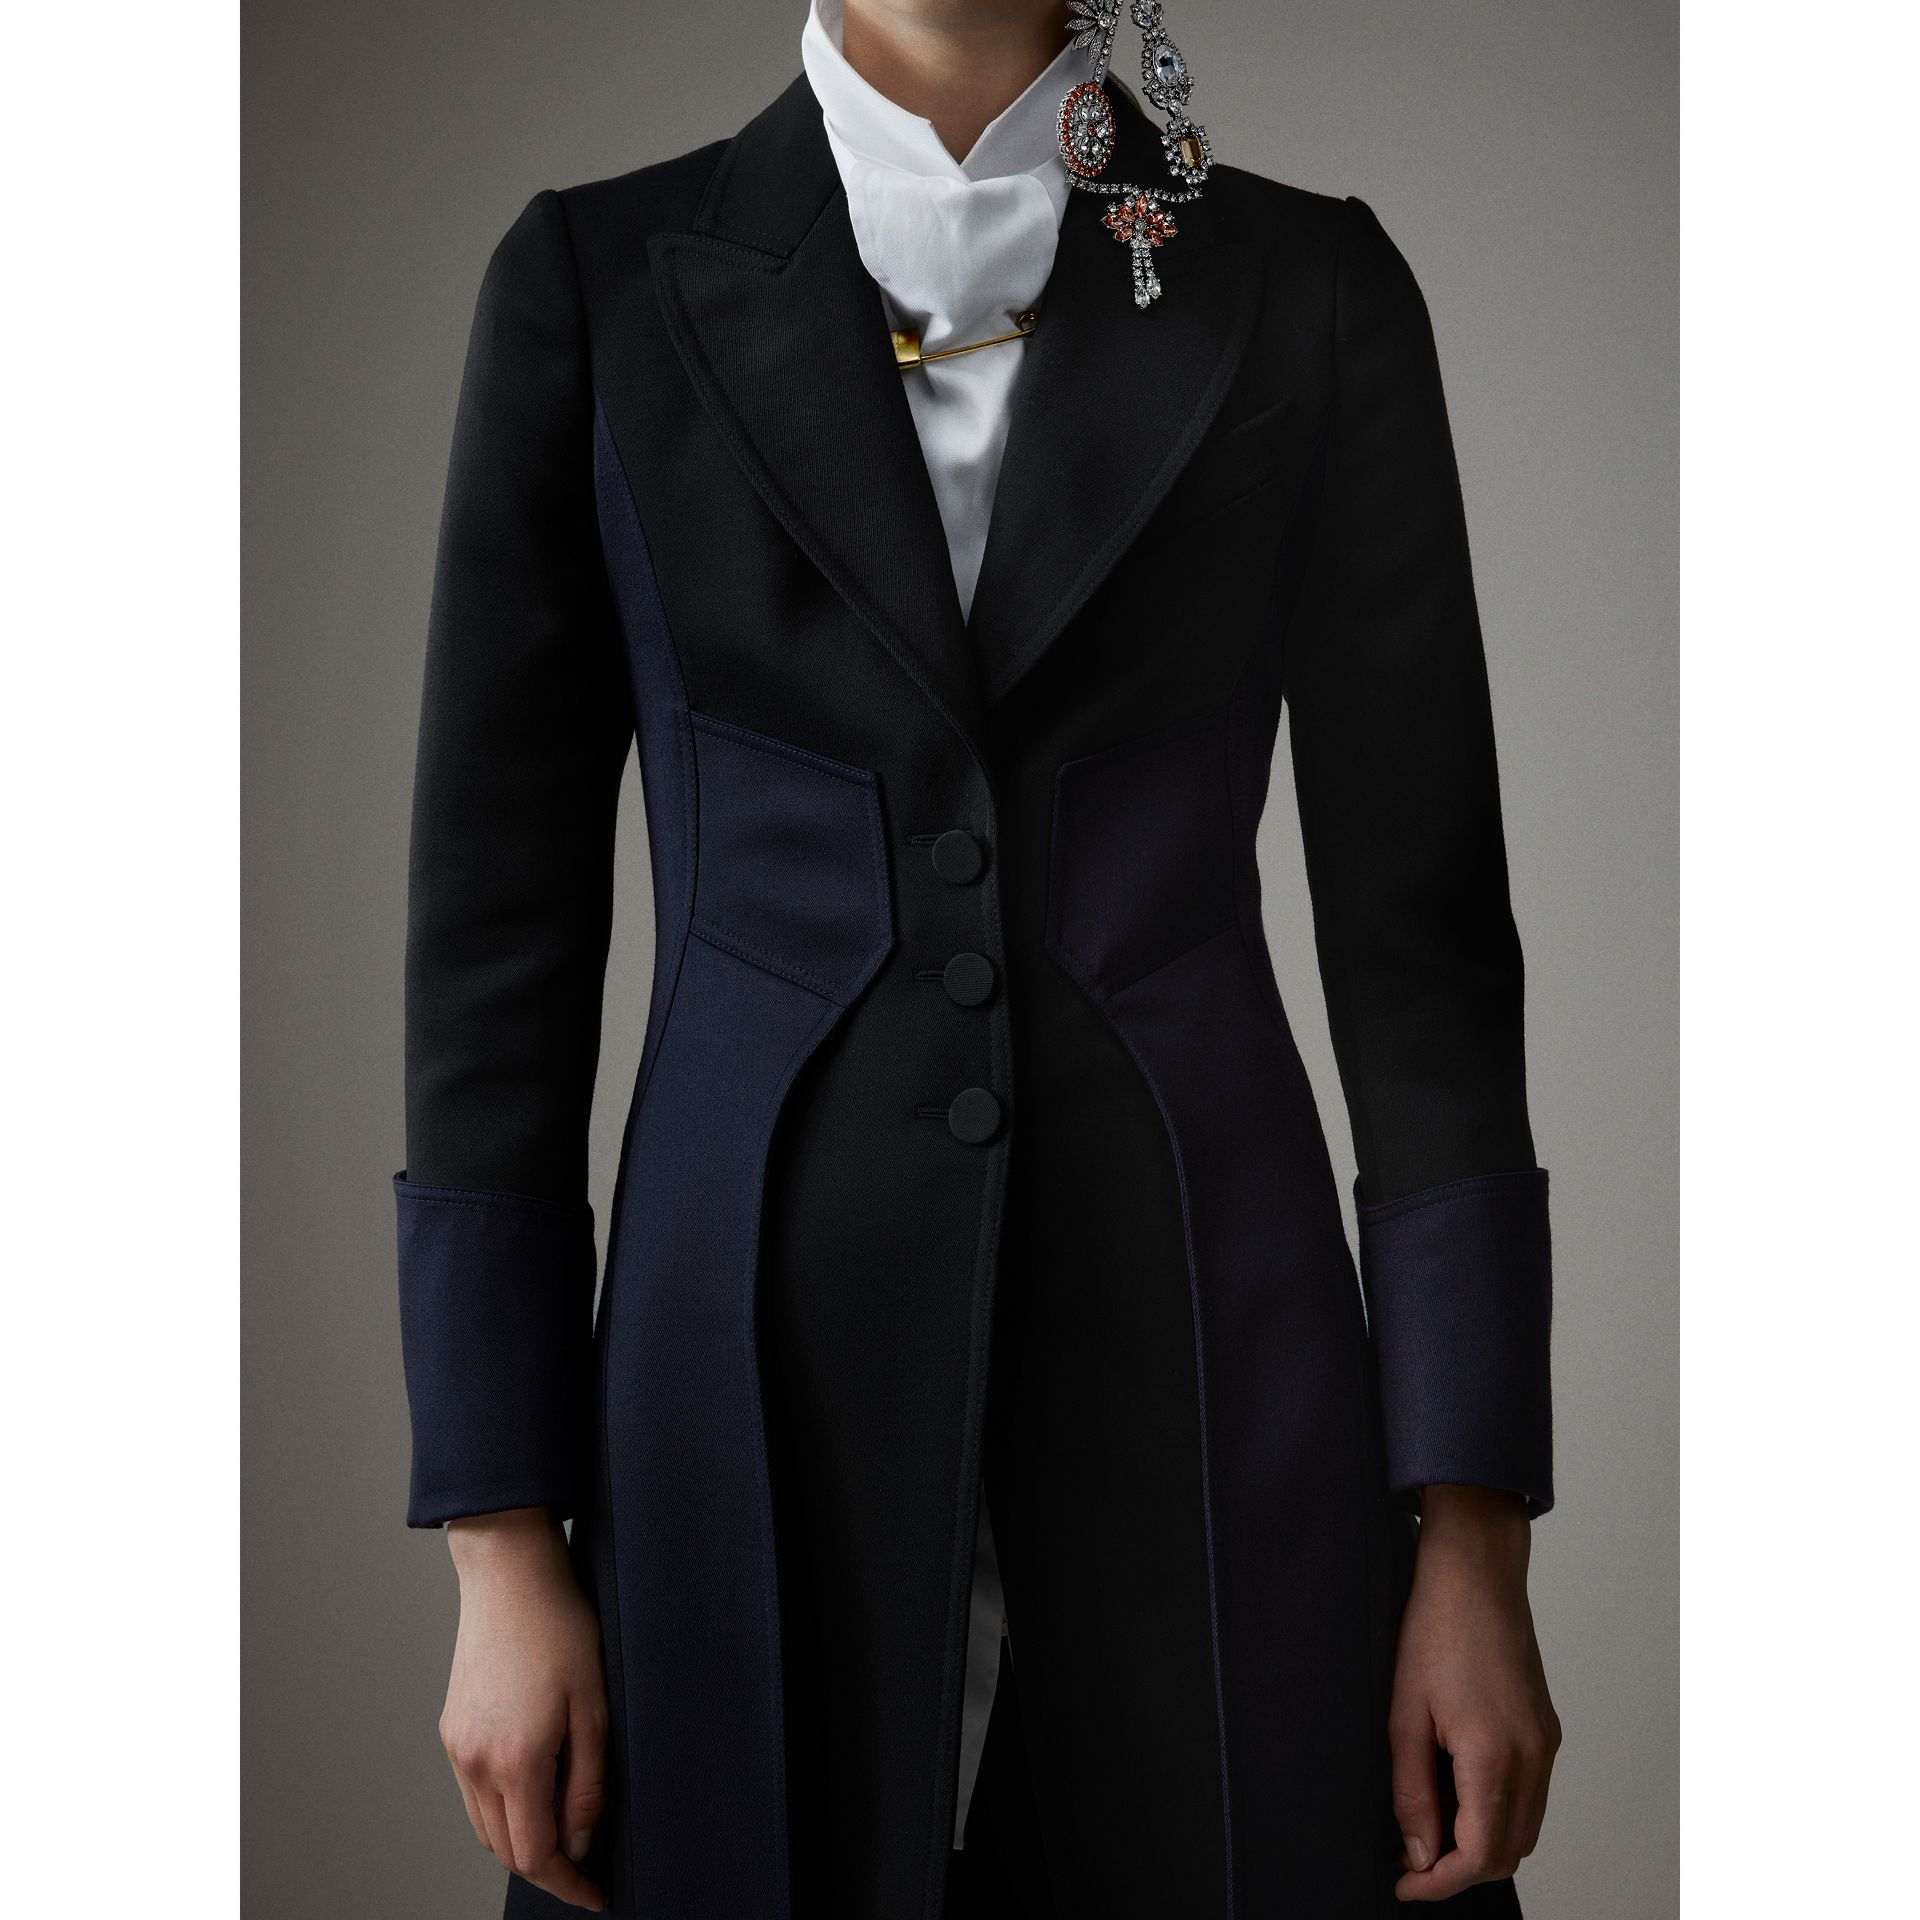 Wool Dressage Coat in Black - Women | Burberry Australia - gallery image 1